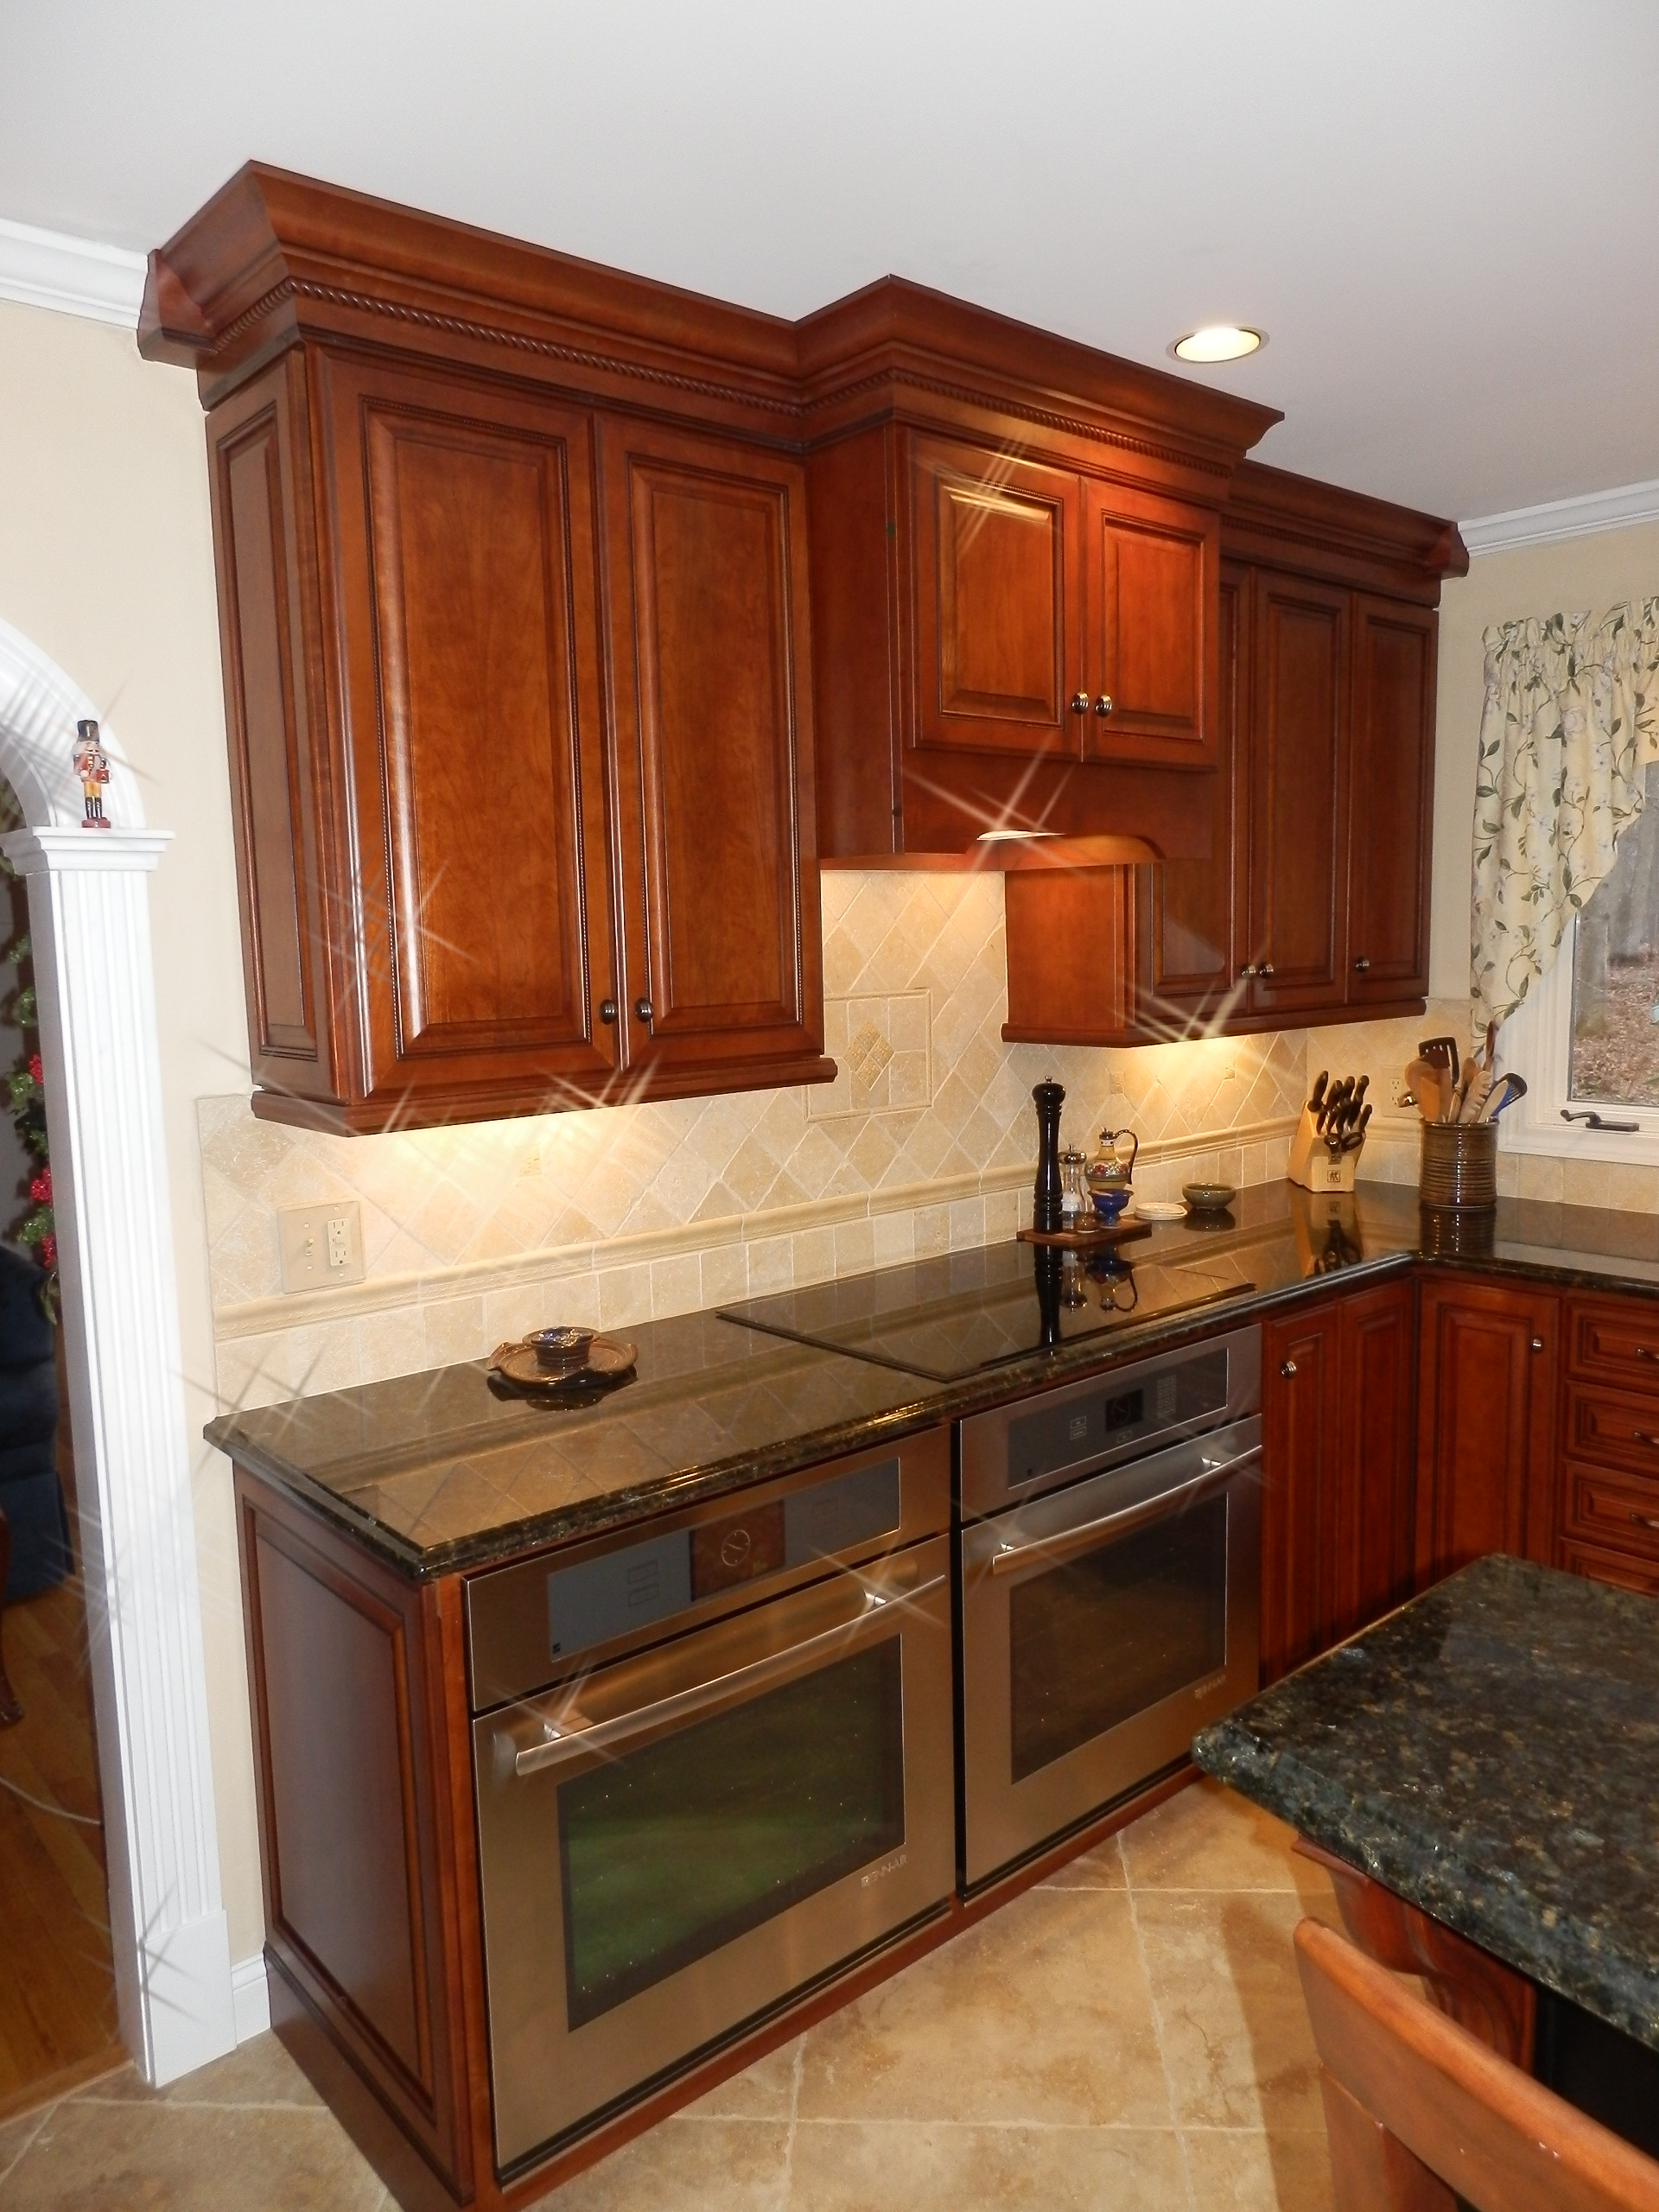 Traditional Look Of Raised Panel Cherry Cabinetry Kitchen Design Center